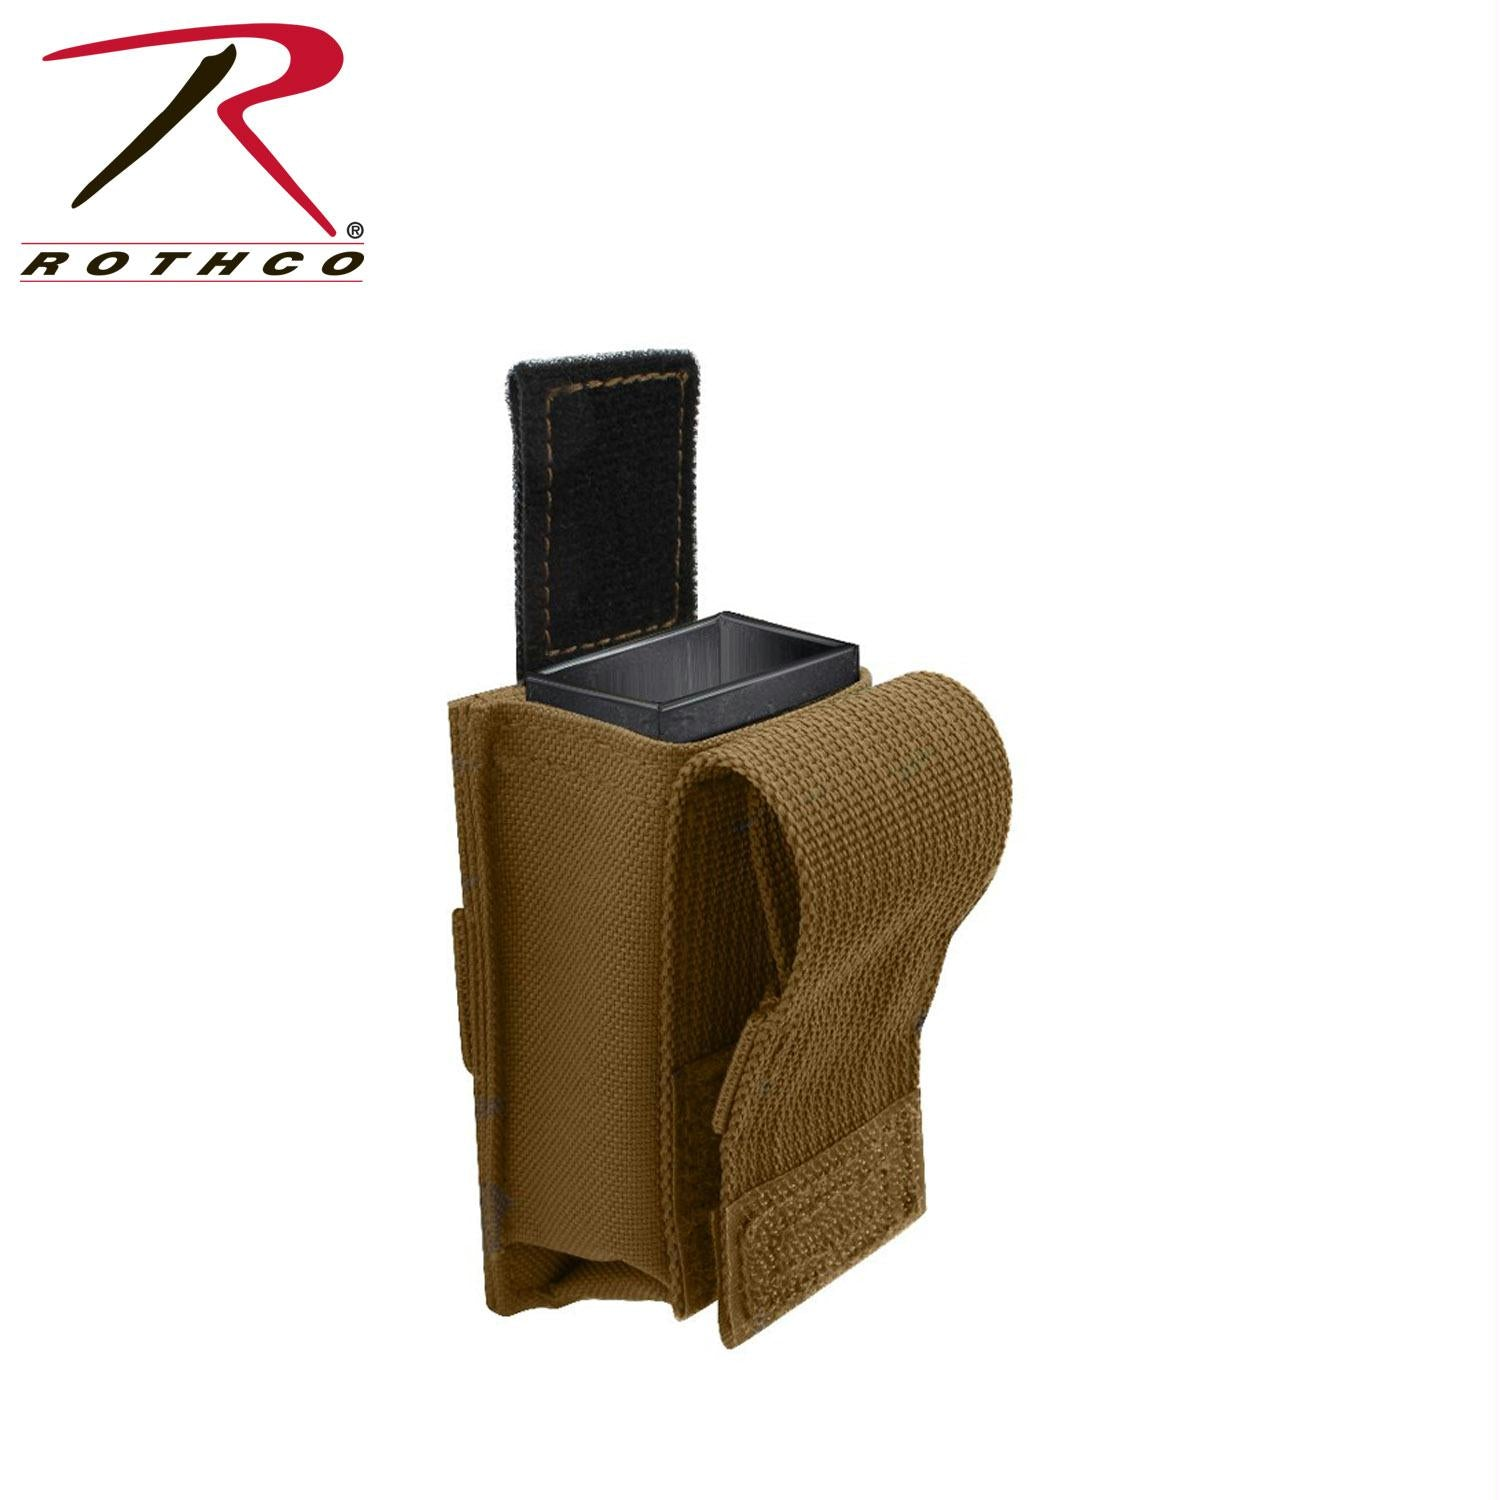 Rothco Single Pistol Mag Pouch With Insert - Molle - Coyote Brown